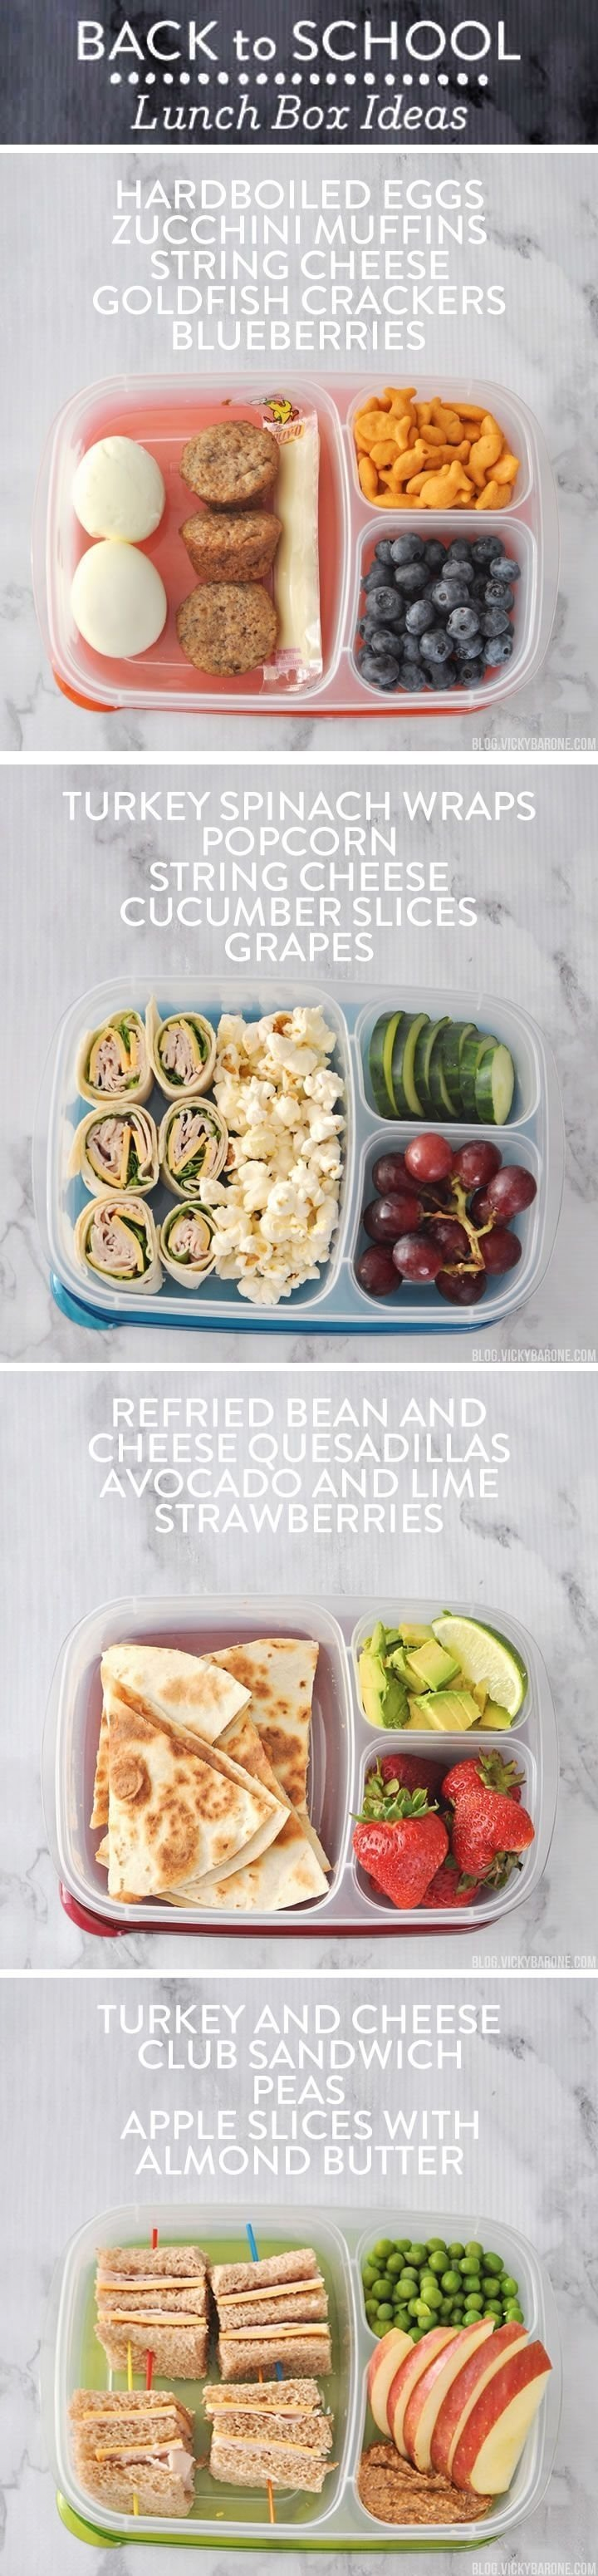 10 Nice Lunch Ideas For School Lunch Box 779 best lunch box ideas images on pinterest healthy treats kid 2020